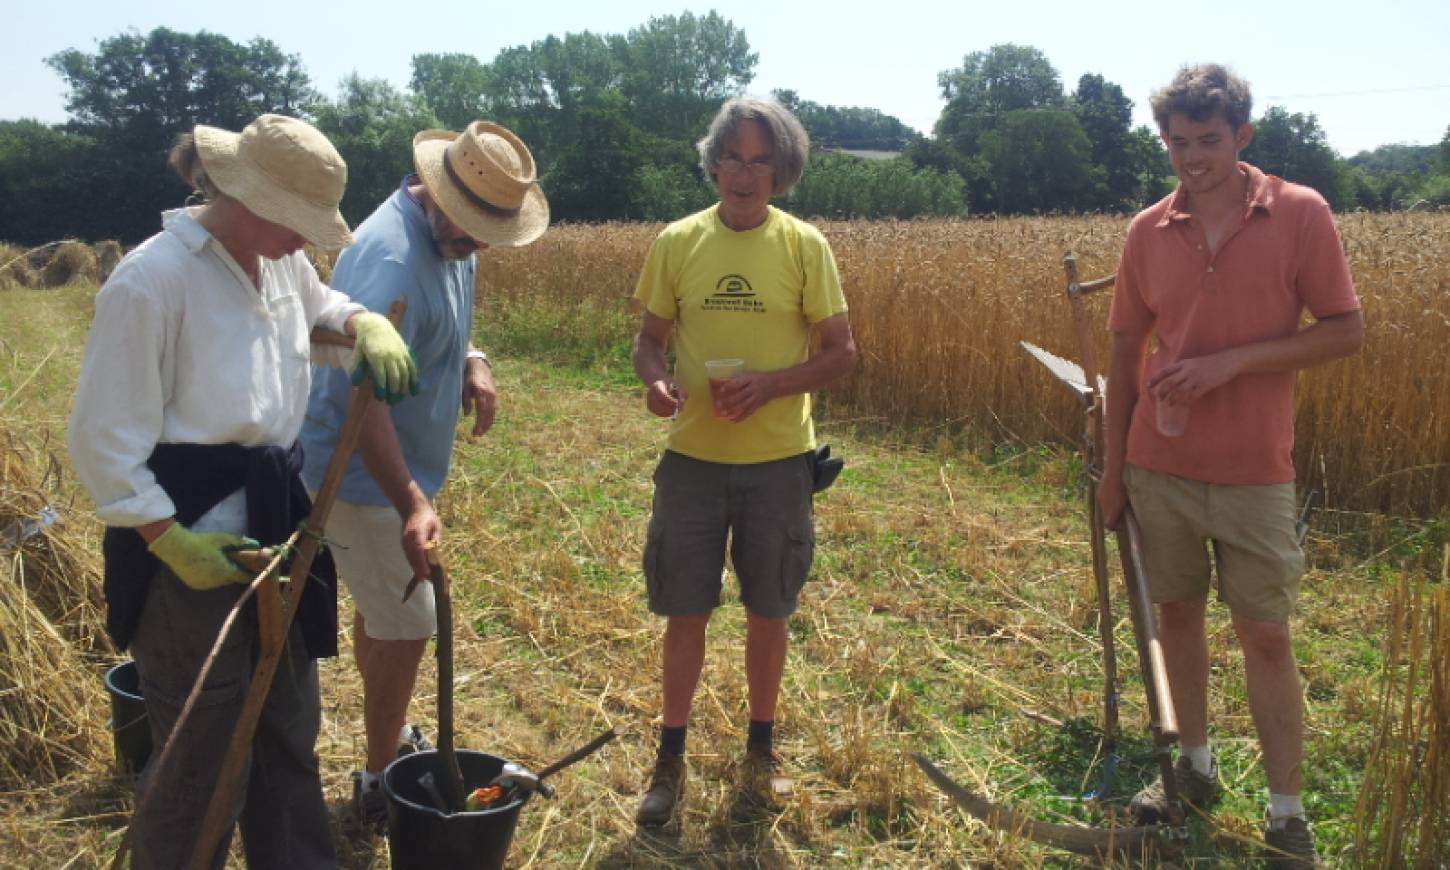 WoWo manual harvest pic: Ann Bodkin, scythers conference with Petra, Robert, Andy and Mathew - 12:26pm&nbsp;8<sup>th</sup>&nbsp;Aug.&nbsp;'15